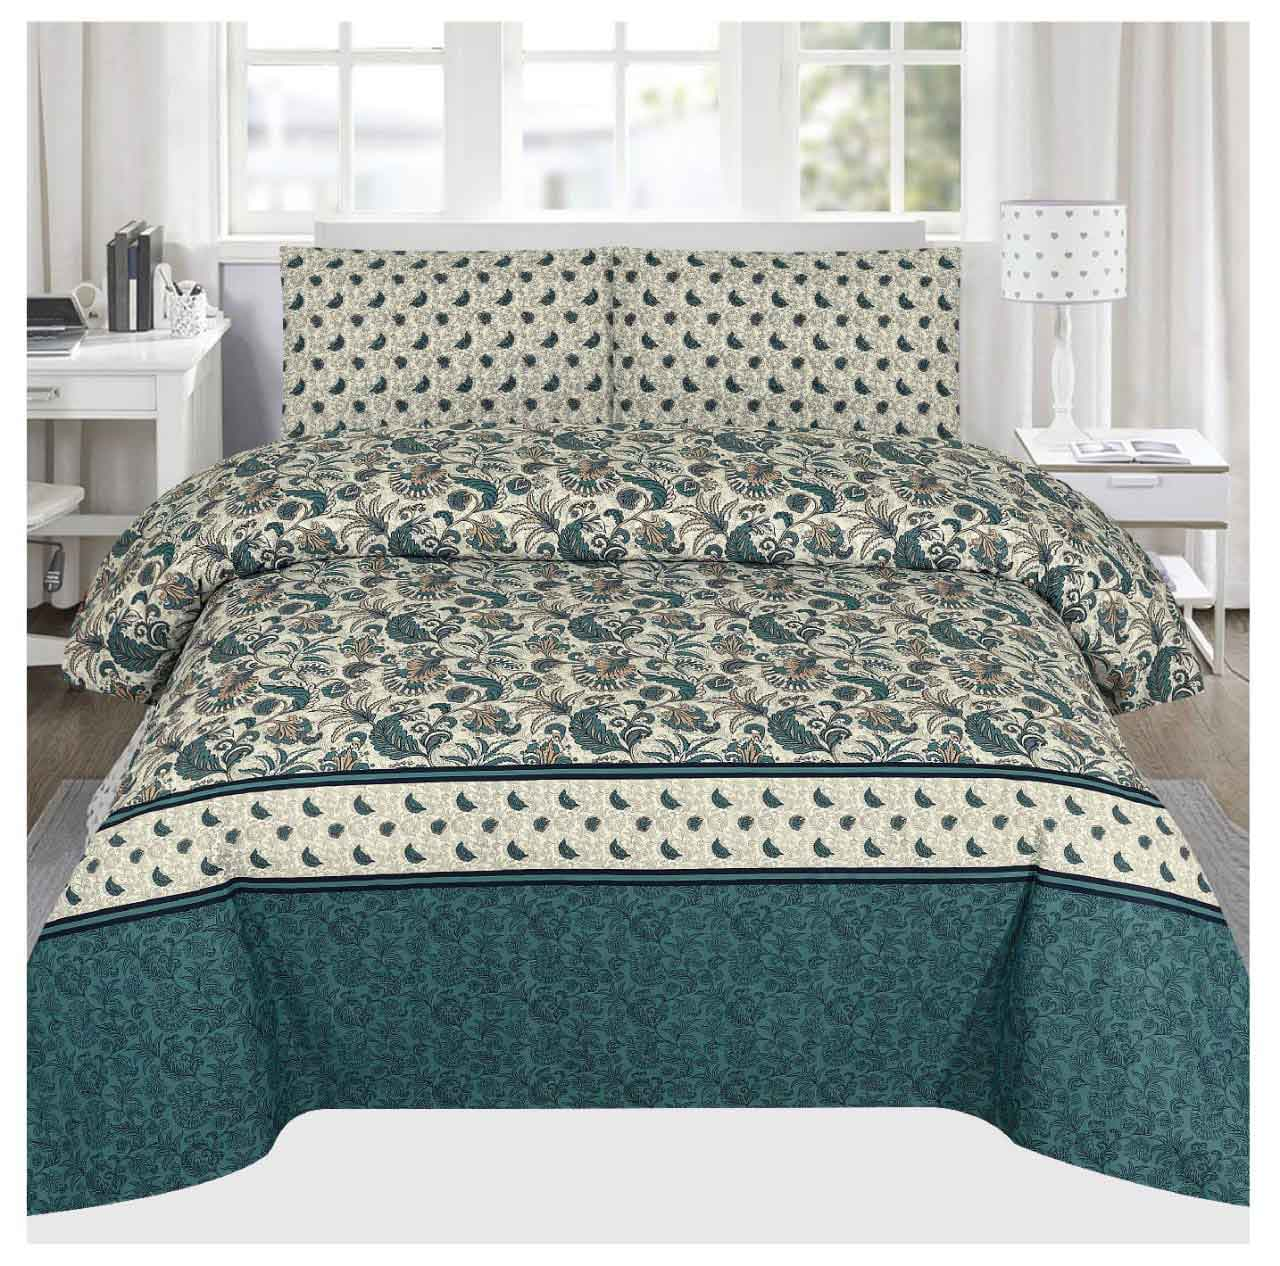 Grace D107 - Cotton PC King Size Bedsheet with 2 Pillow Covers.